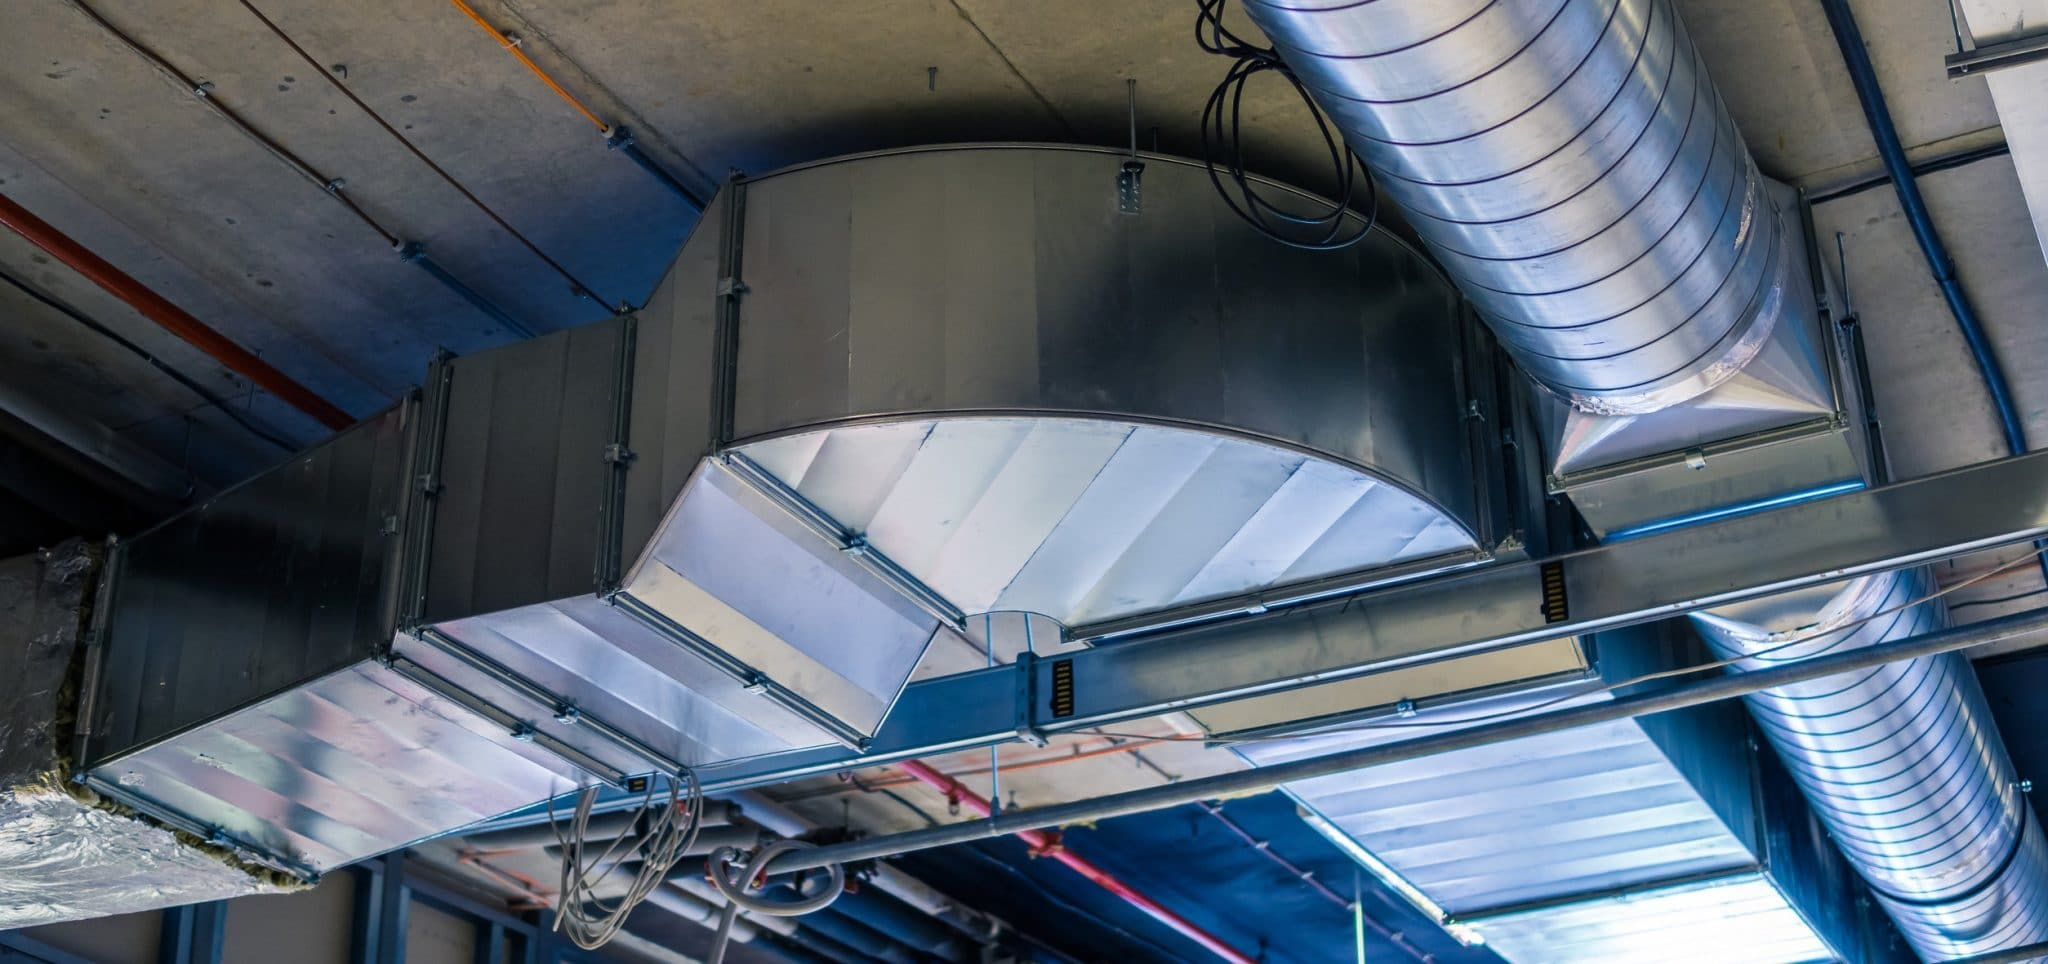 Ducts of an hvac system